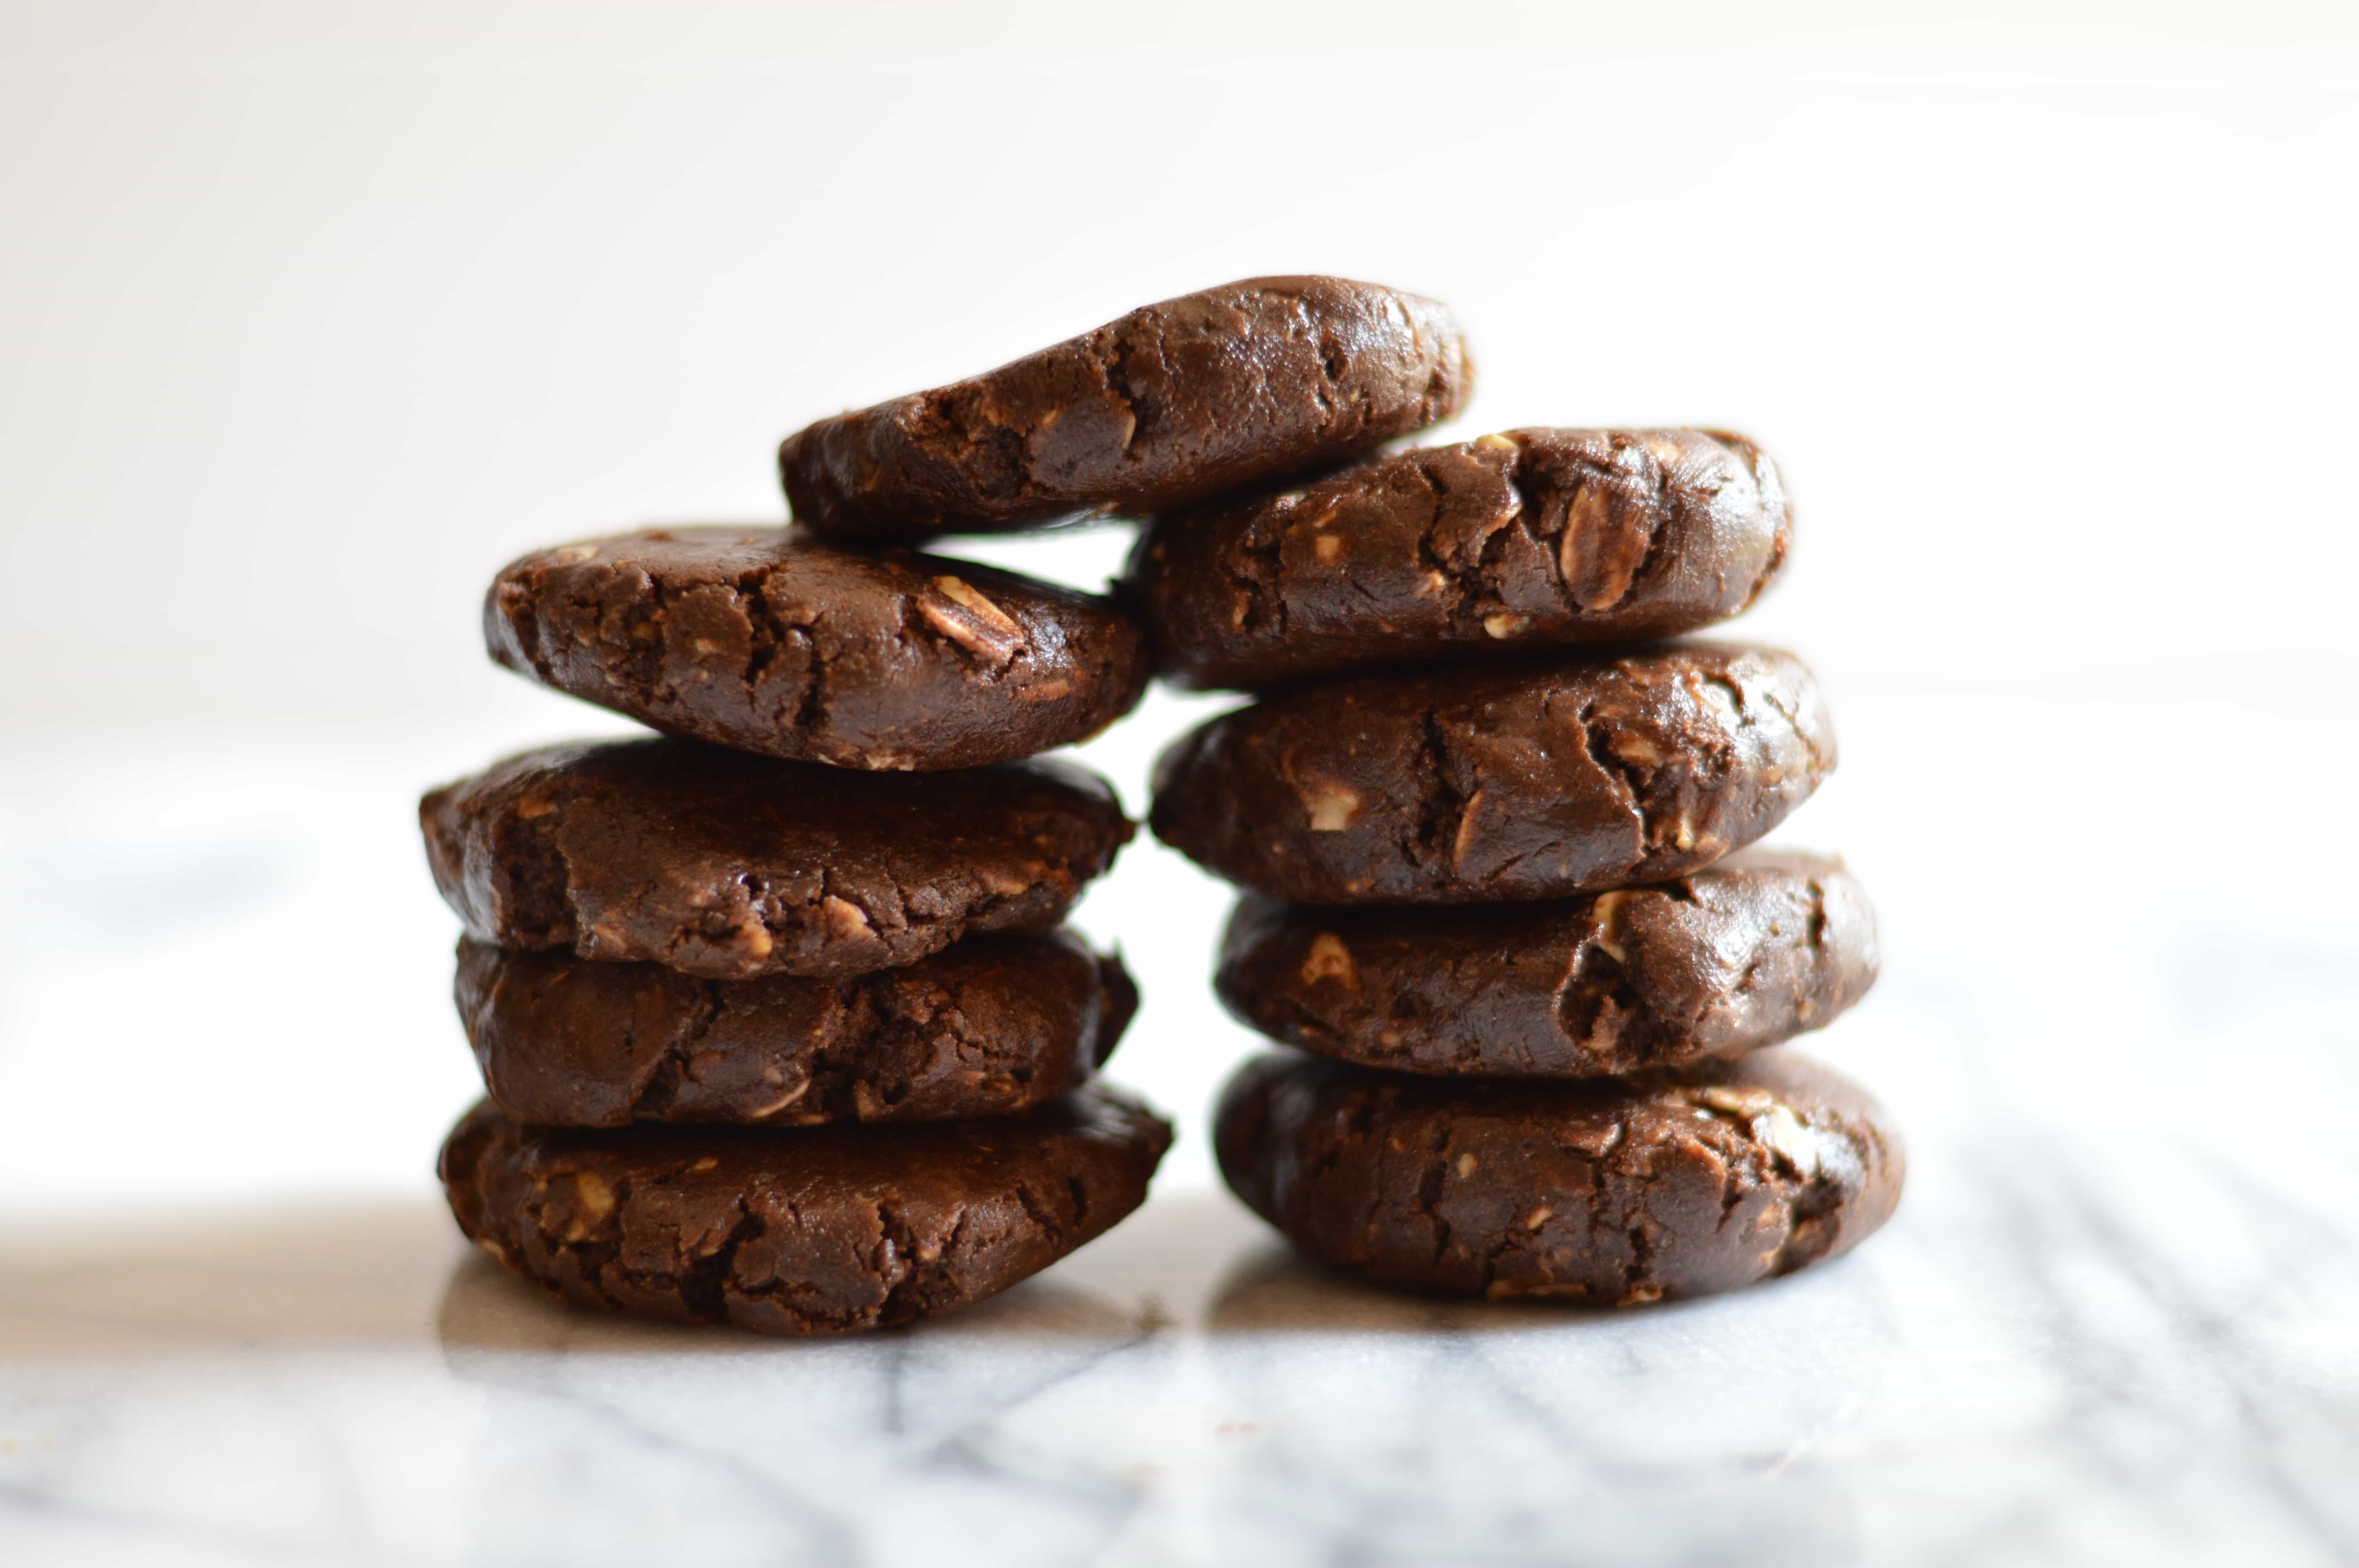 Shakeology cookies   I'm not claiming it's the healthiest of